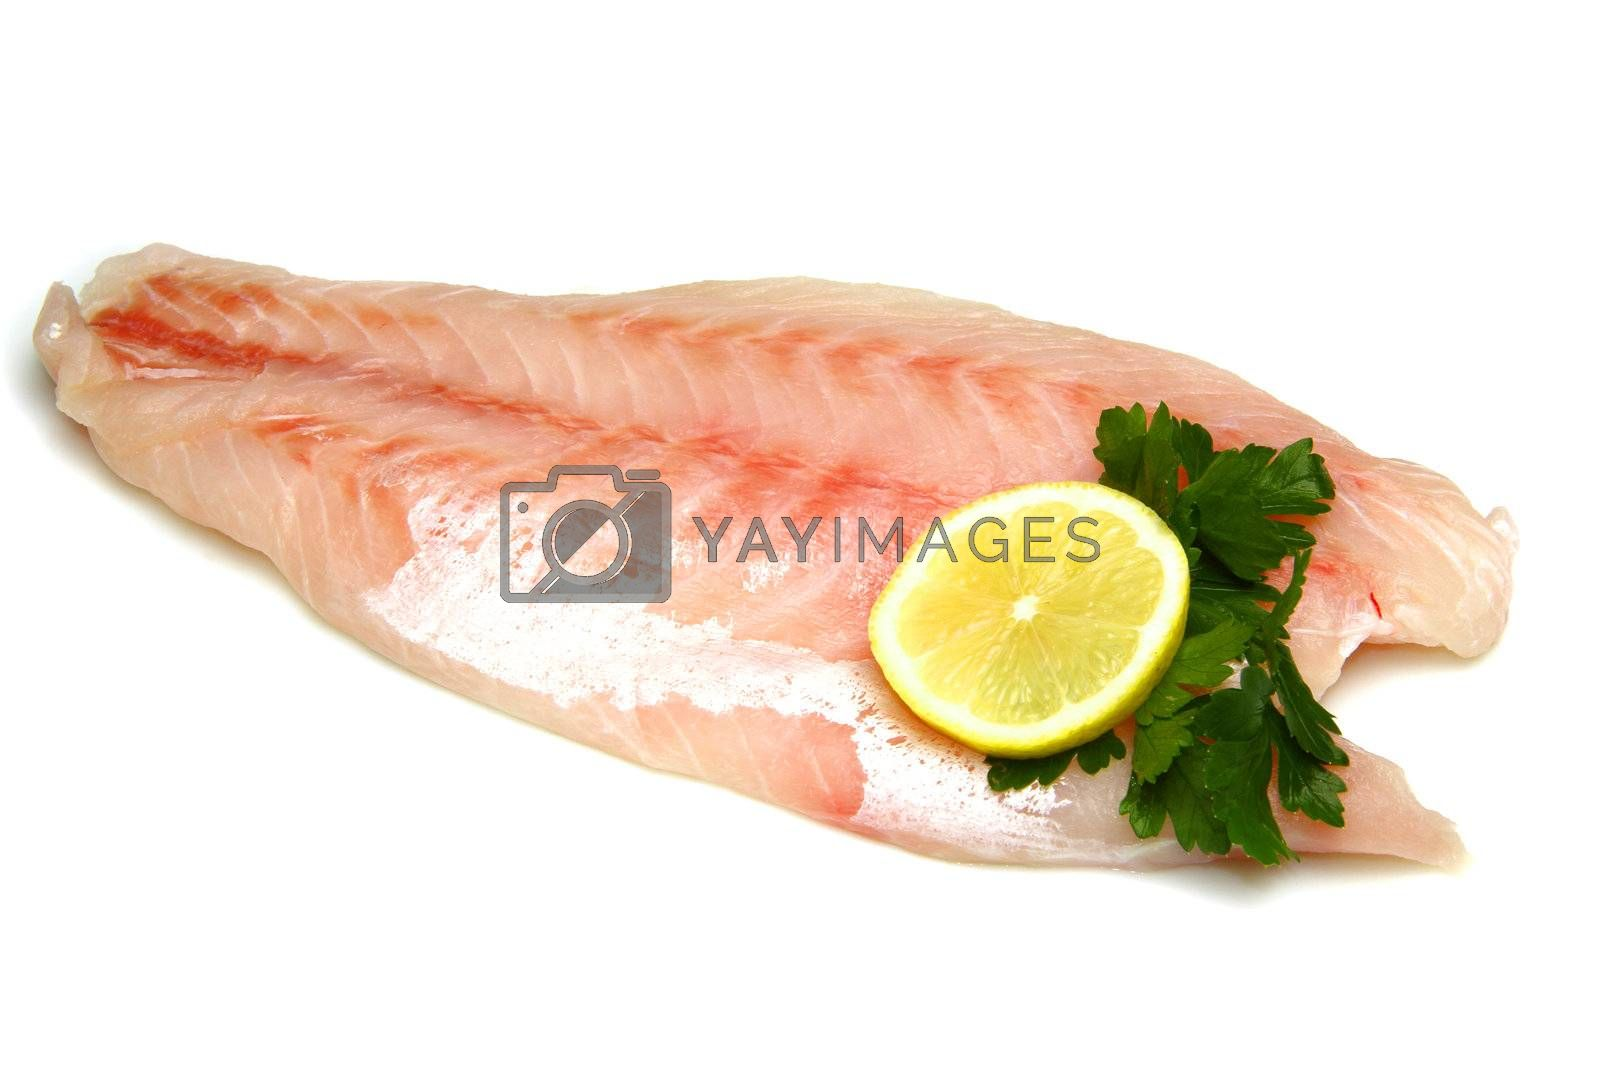 Royalty free image of Fresh crude fish fillet by lsantilli